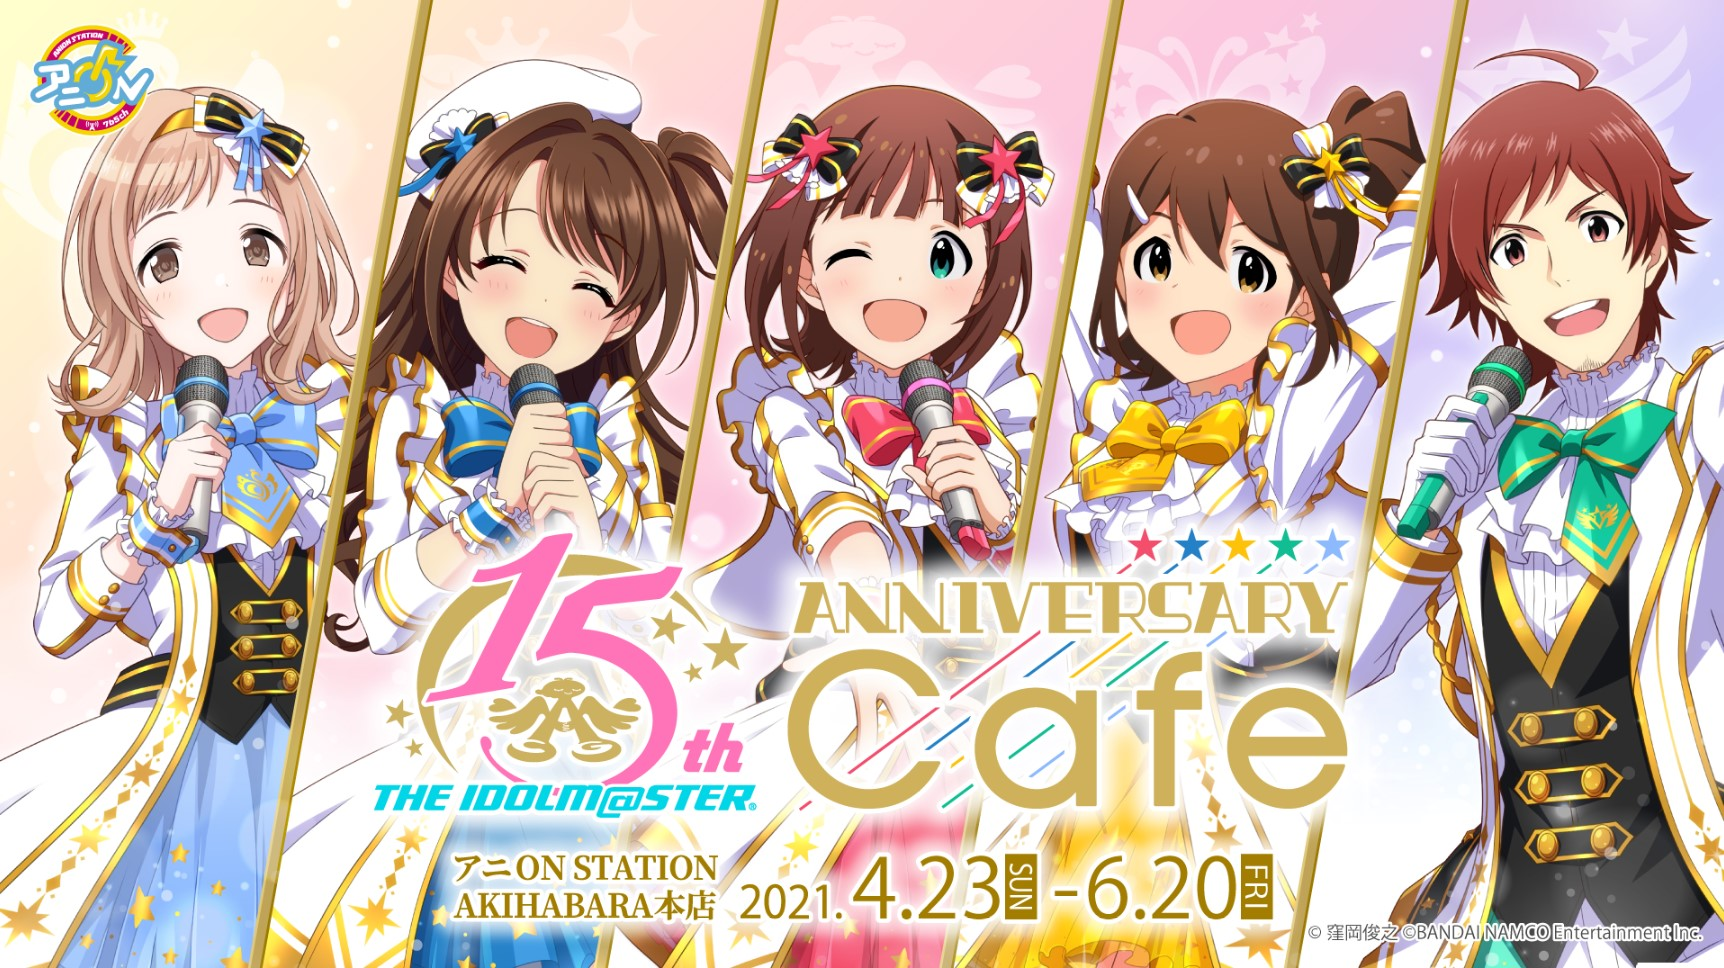 【5/19】THE IDOLM@STER 15th  anniversary cafe